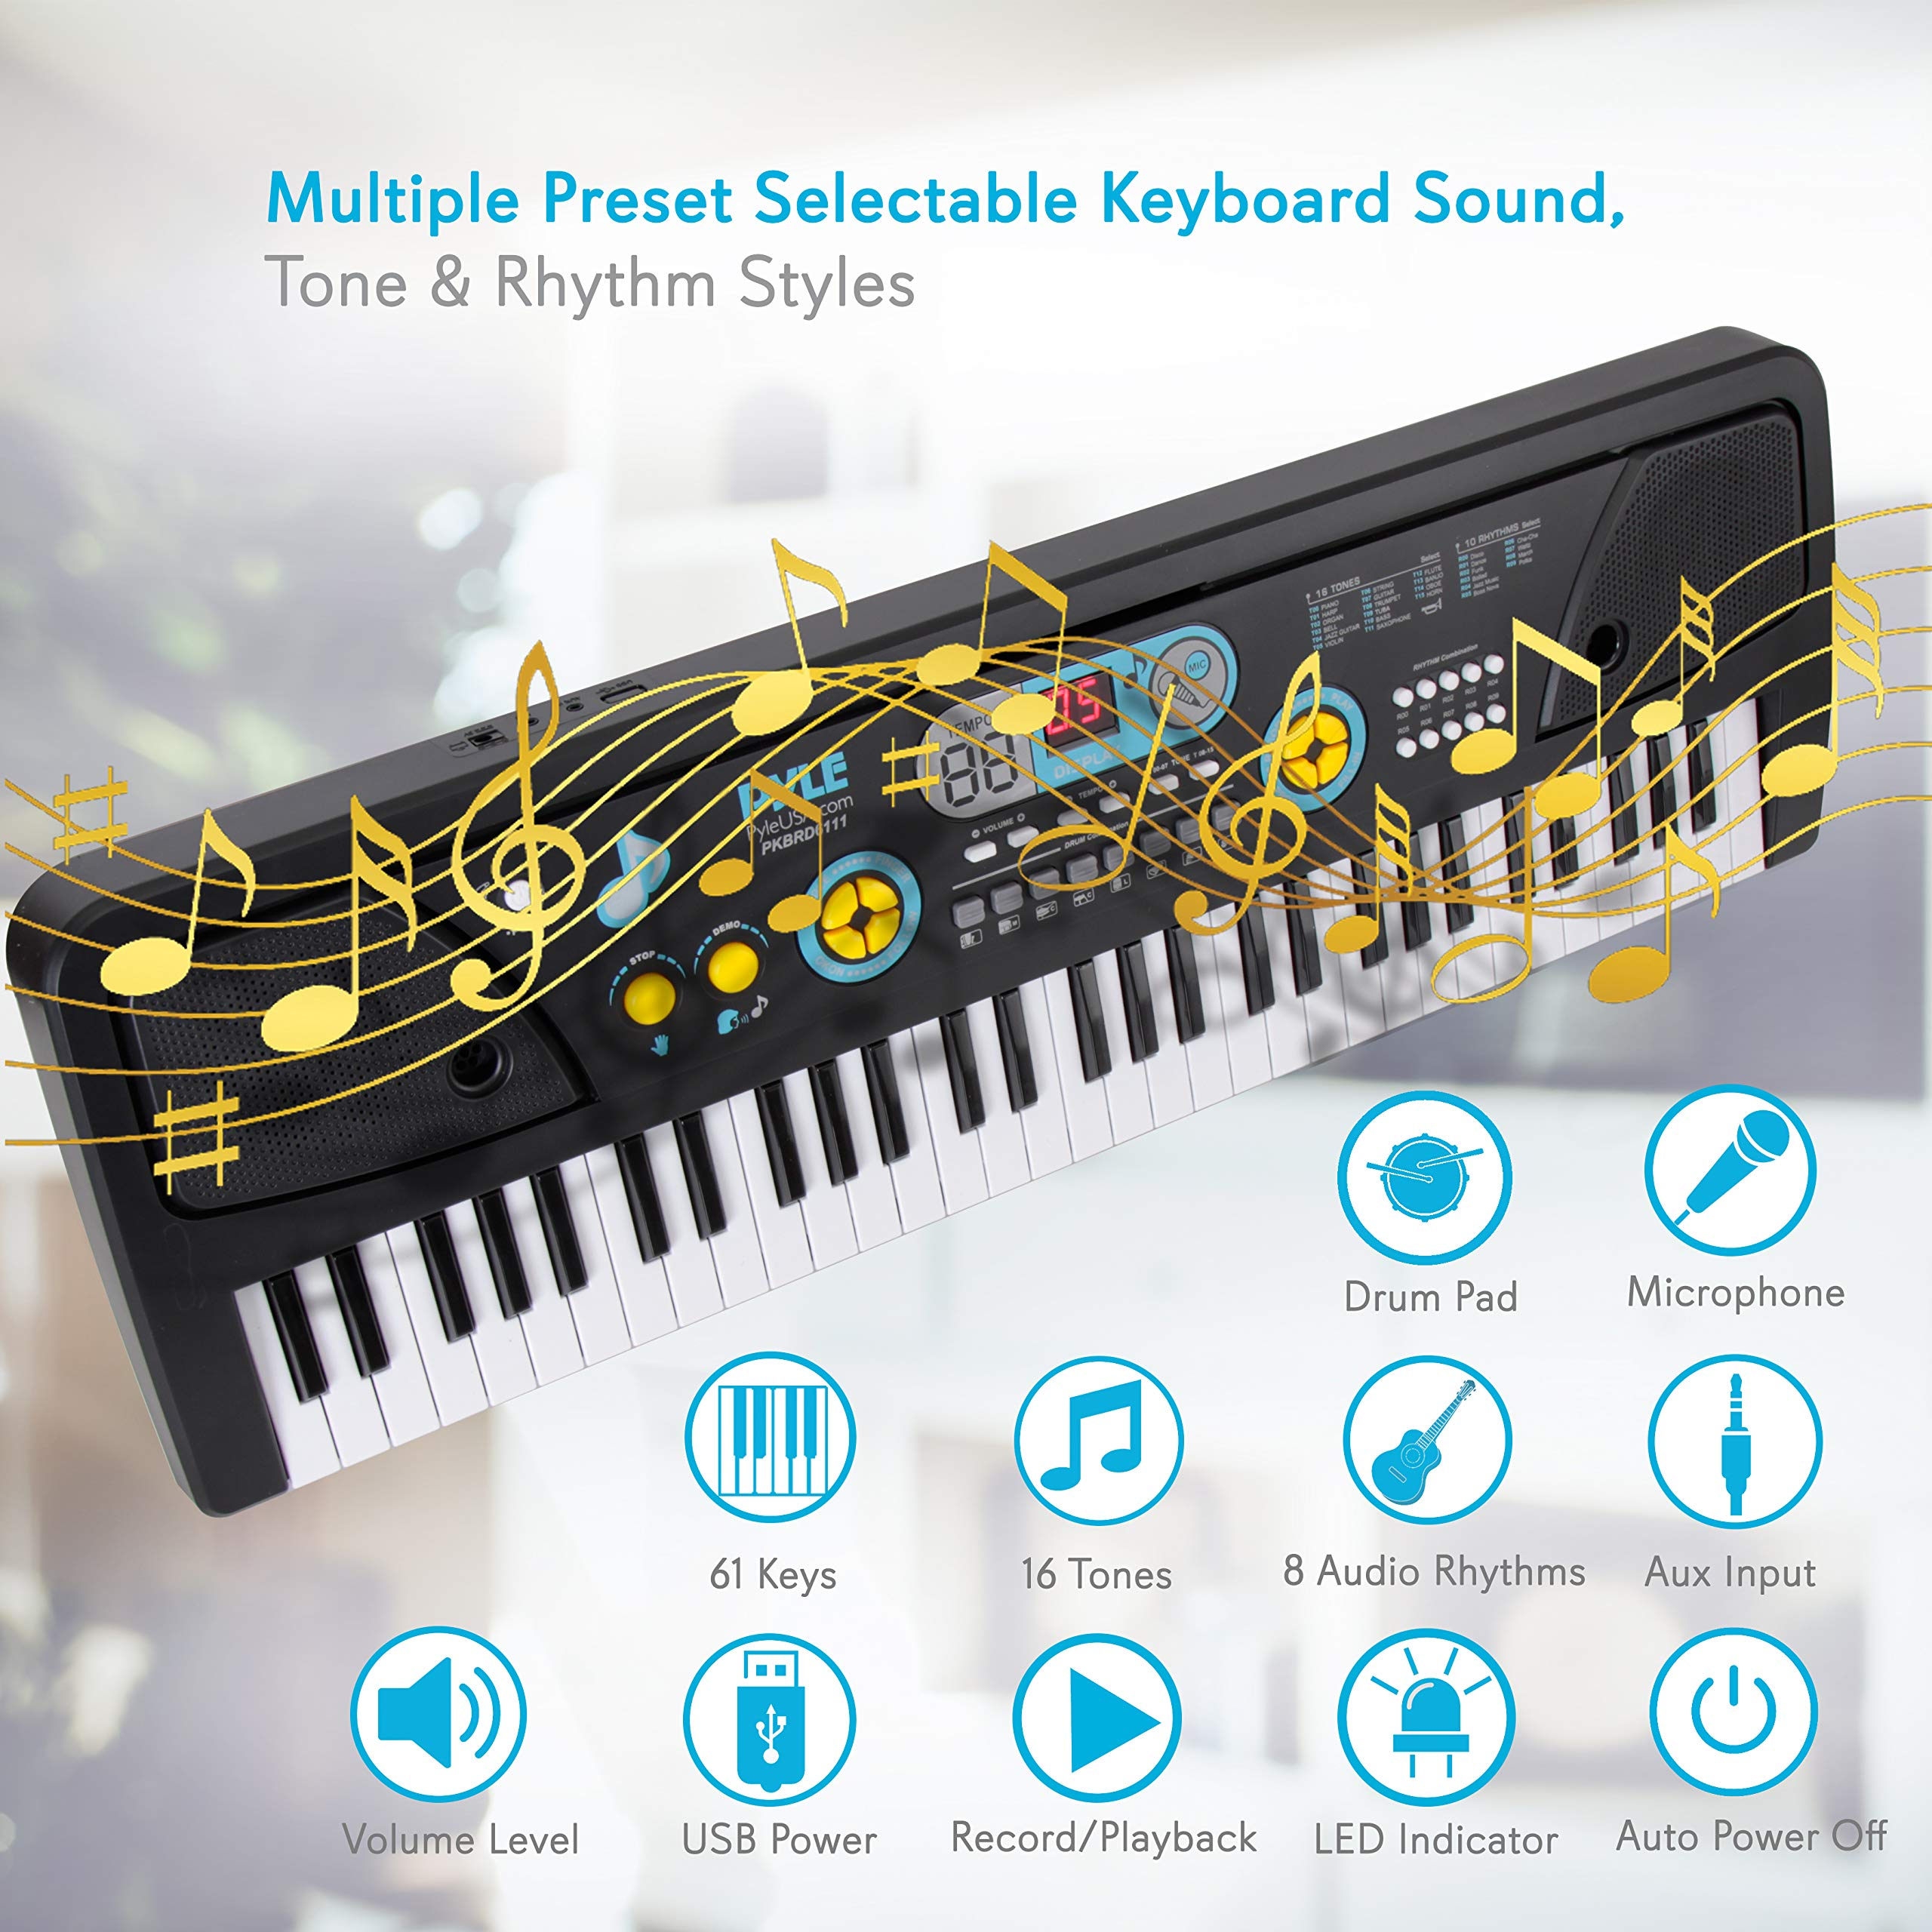 Digital Piano Kids Keyboard - Portable 61 Key Piano Keyboard, Learning Keyboard for Beginners w/ Drum Pad, Recording, Microphone, Music Sheet Stand, Built-in Speaker - Pyle PKBRD6111 by Pyle (Image #1)